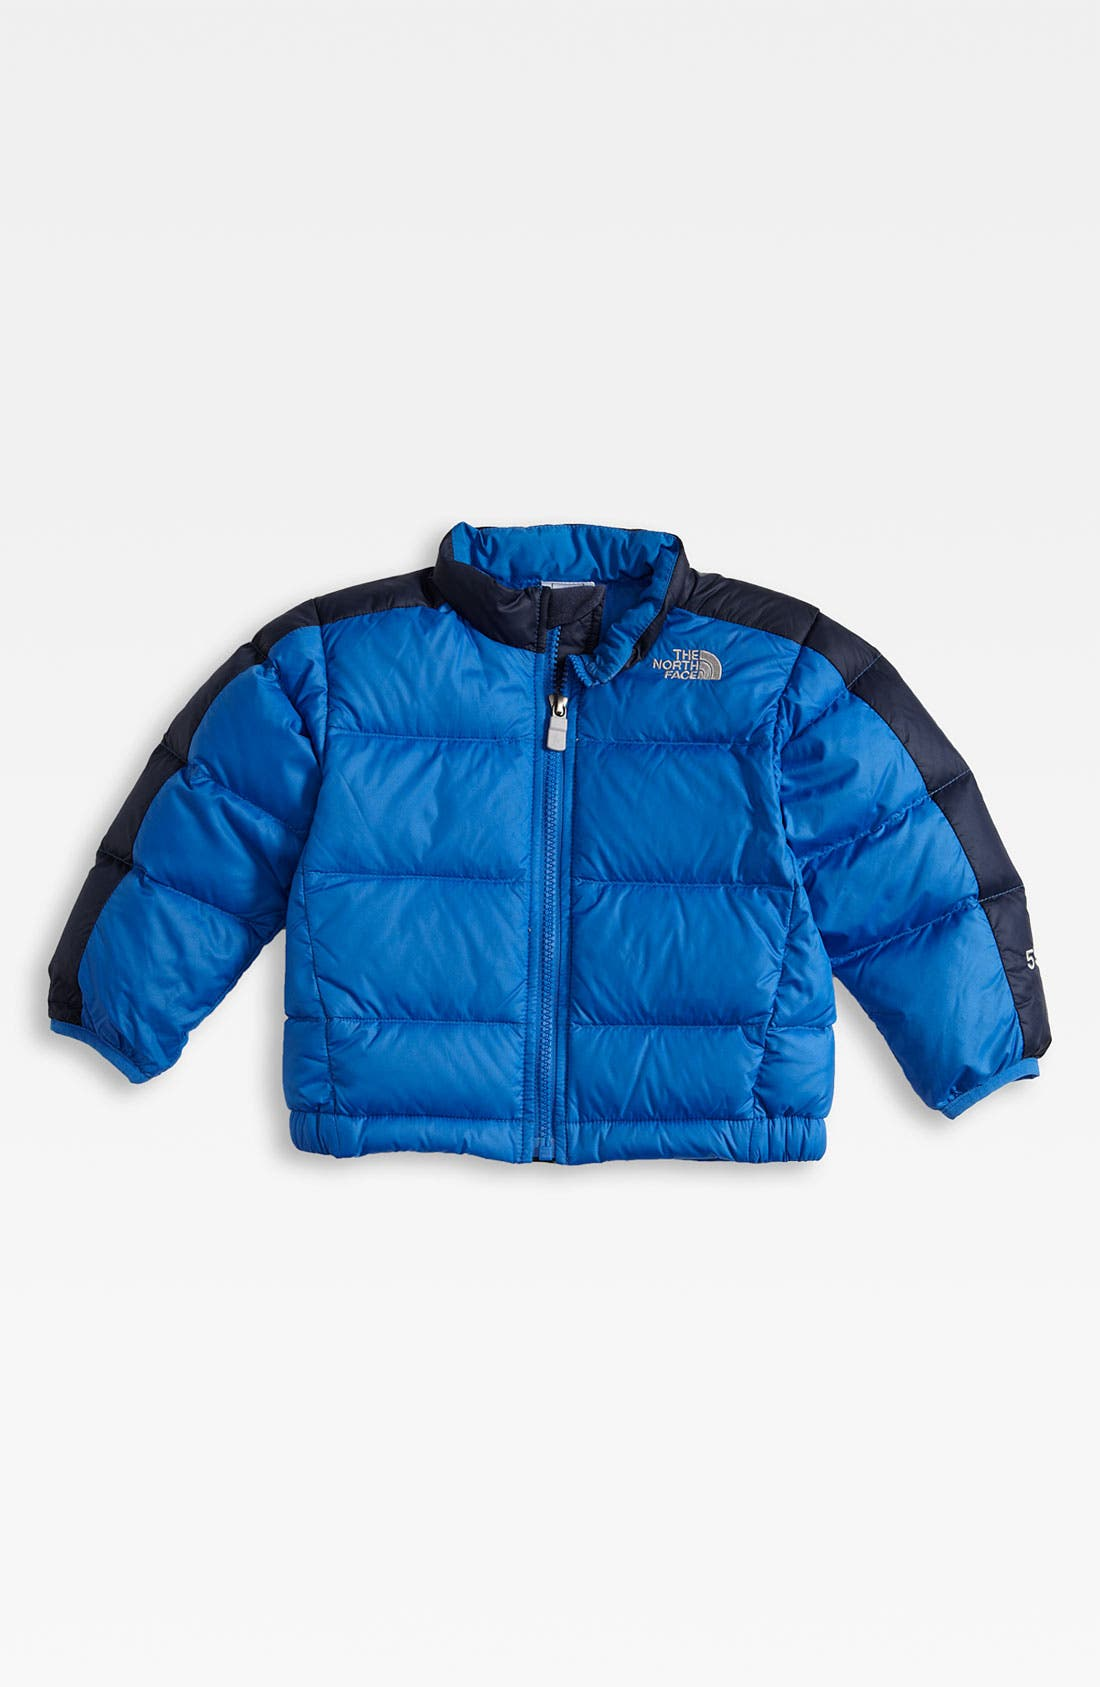 Main Image - The North Face 'Aconcagua' Jacket (Infant) (Nordstrom Exclusive)